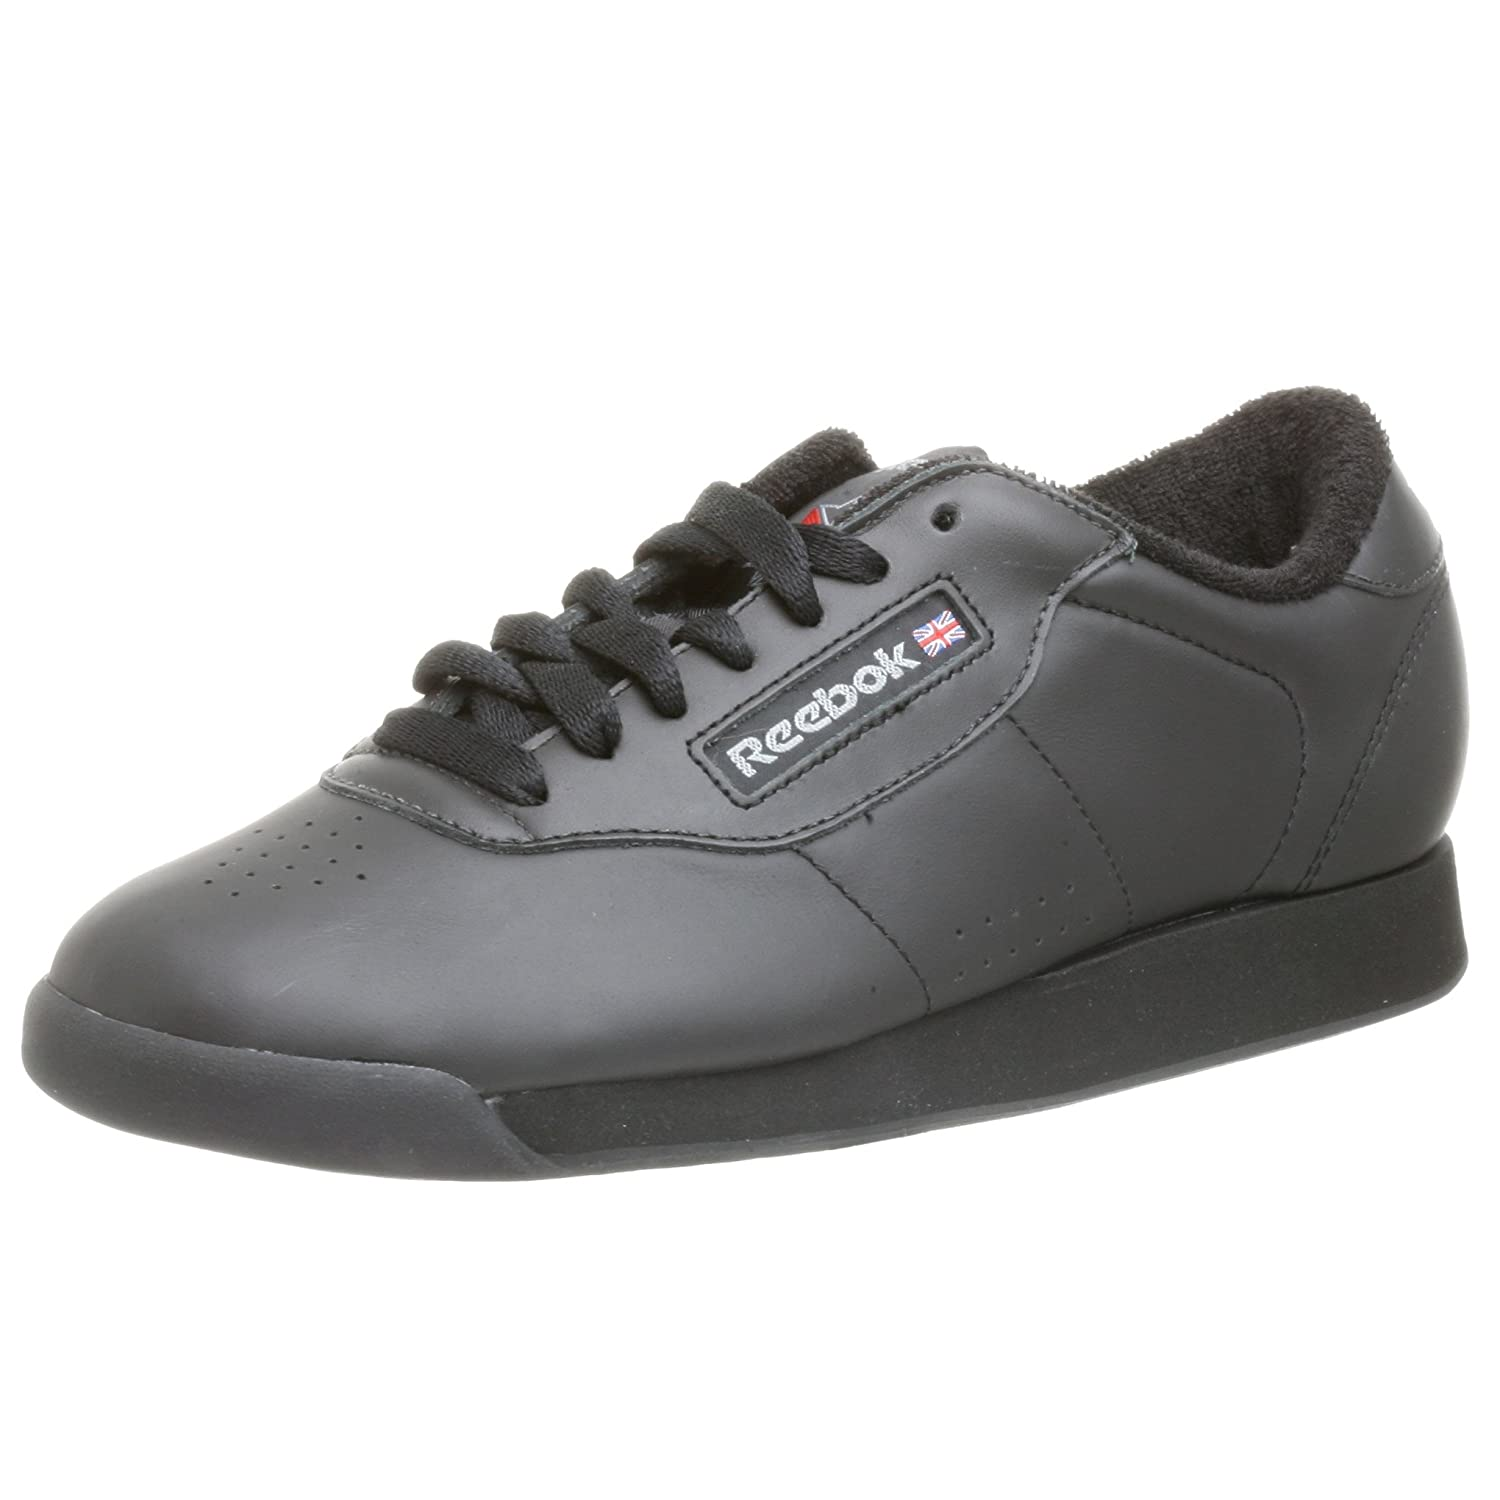 4b1e06916571 Reebok Classics Women s Princess Fashion Sneakers  Amazon.ca  Shoes    Handbags